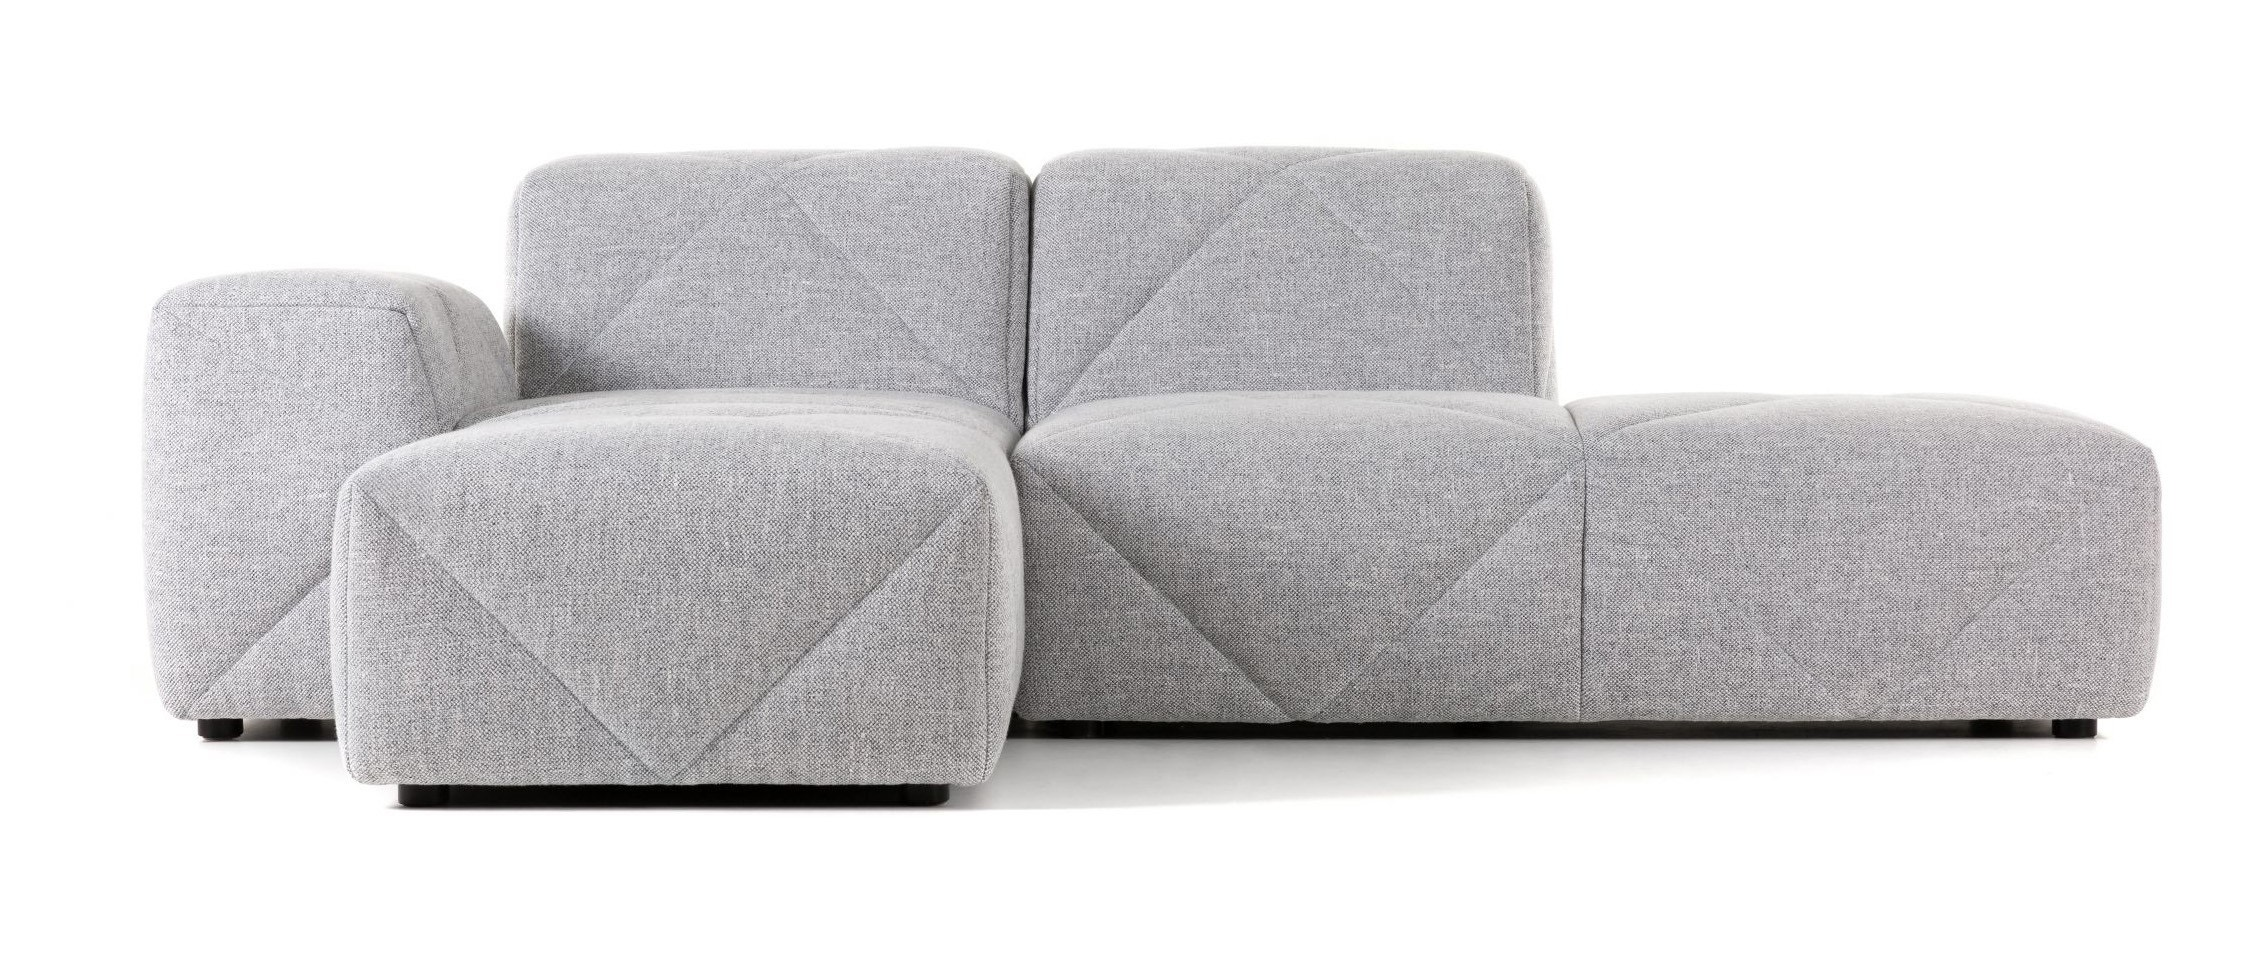 Moooi Best Friend Forever (BFF) Sofa in Vesper Silver (Quick Ship)